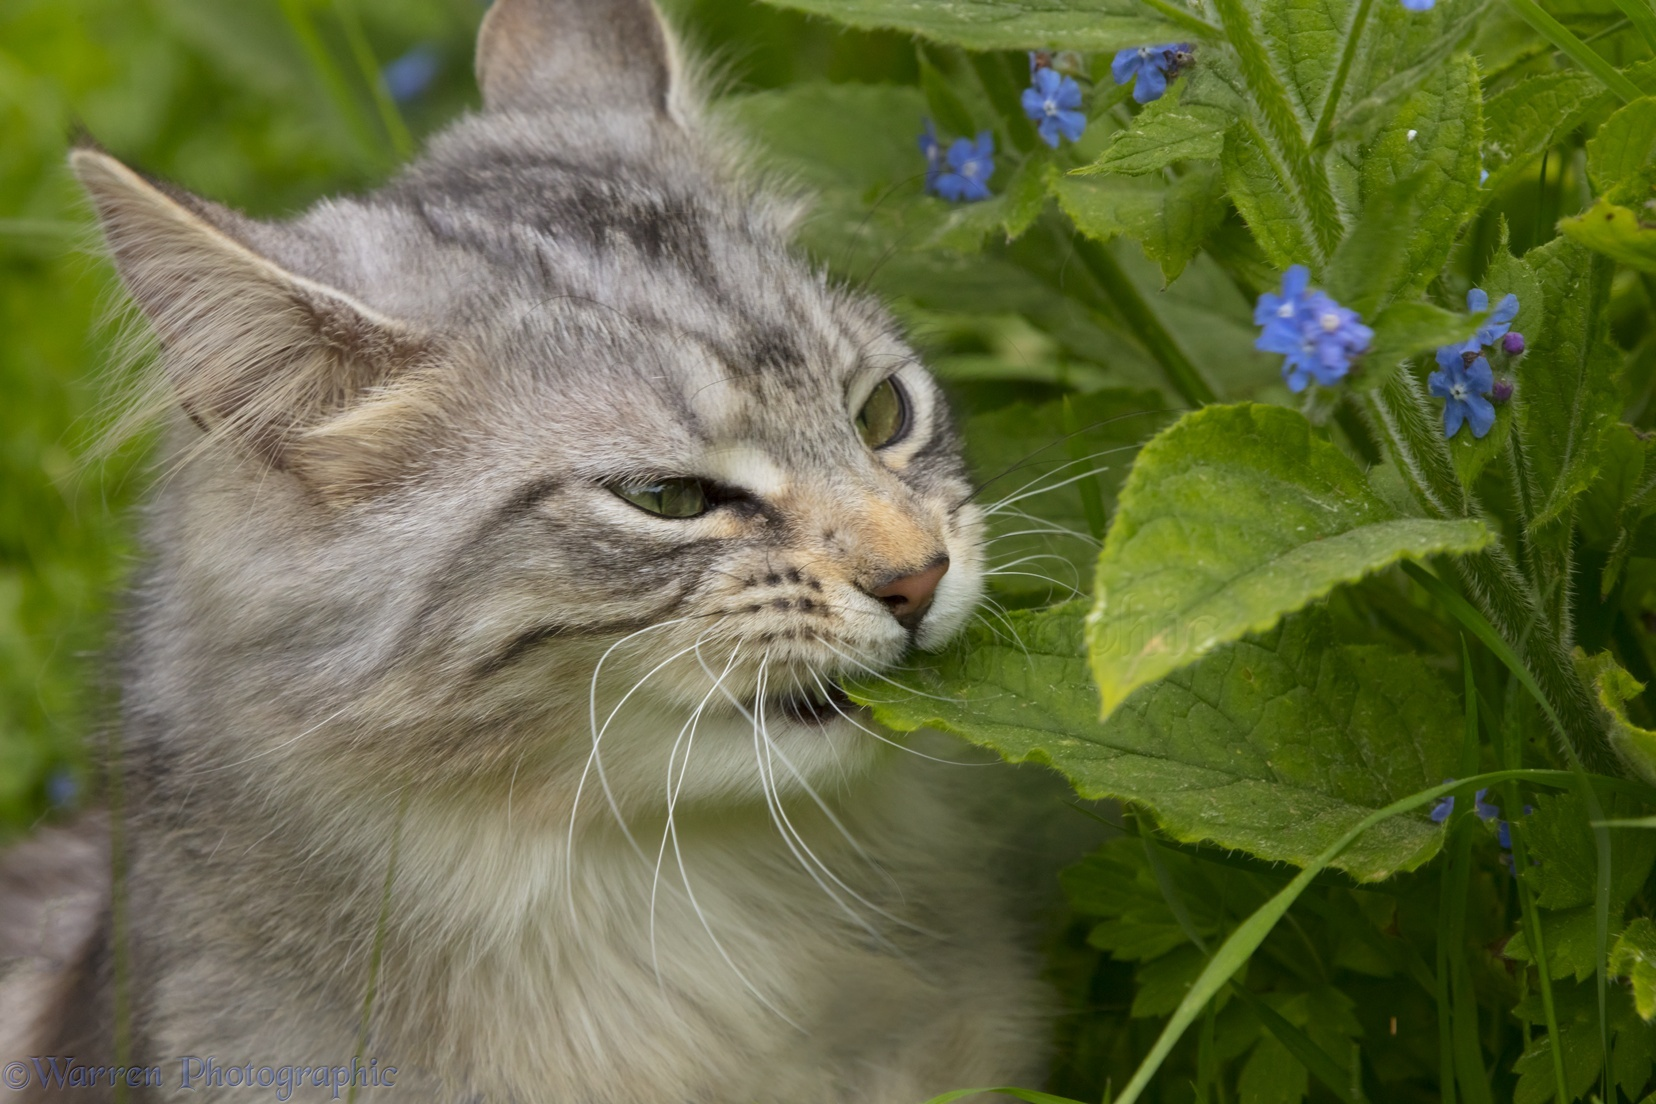 Silver tabby cat eating leaves photo WP46076